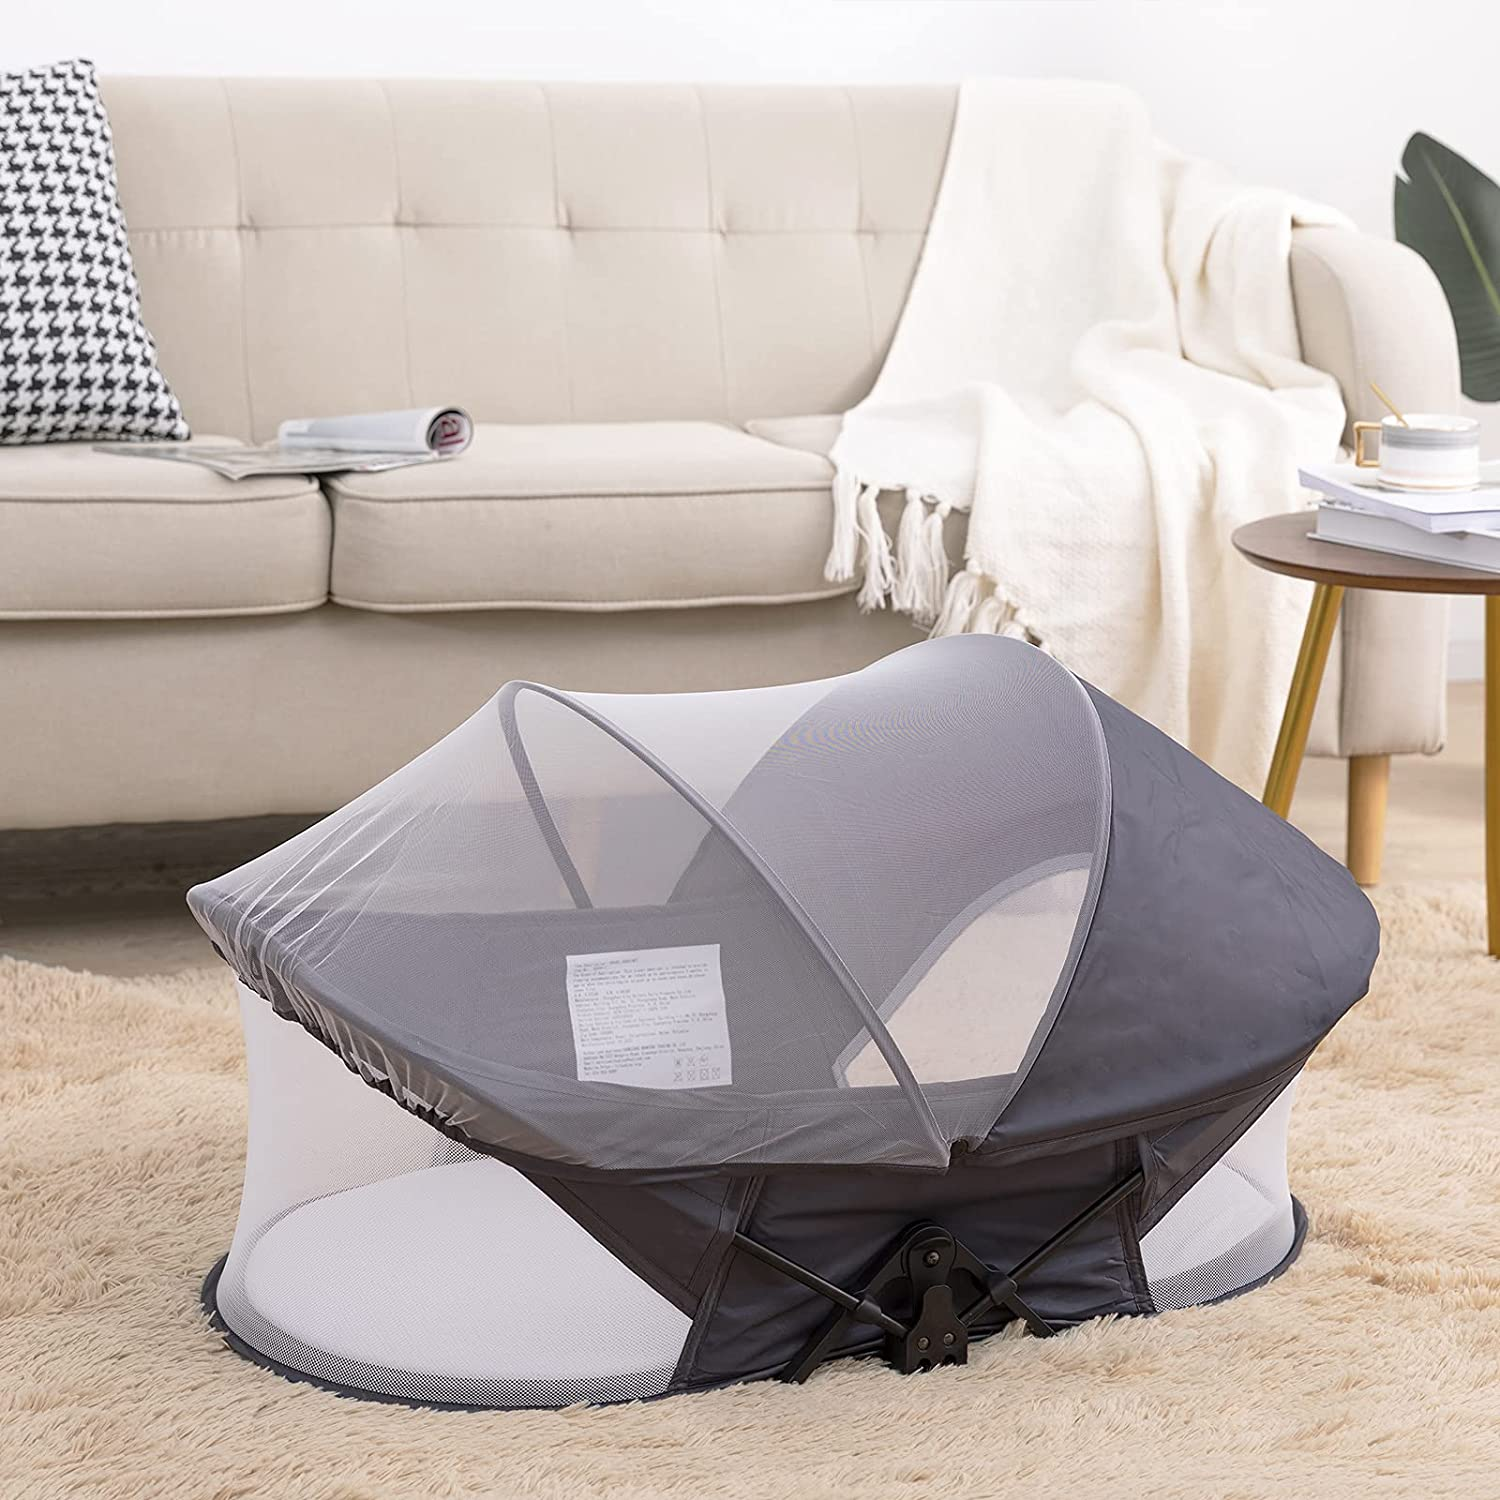 Travel Bassinet for Baby, Portable Baby Bassinet, Foldable Baby Bed with Mosquito Net, Foldable Frame Design, Outdoor Crib for Infant Toddler (Gray)